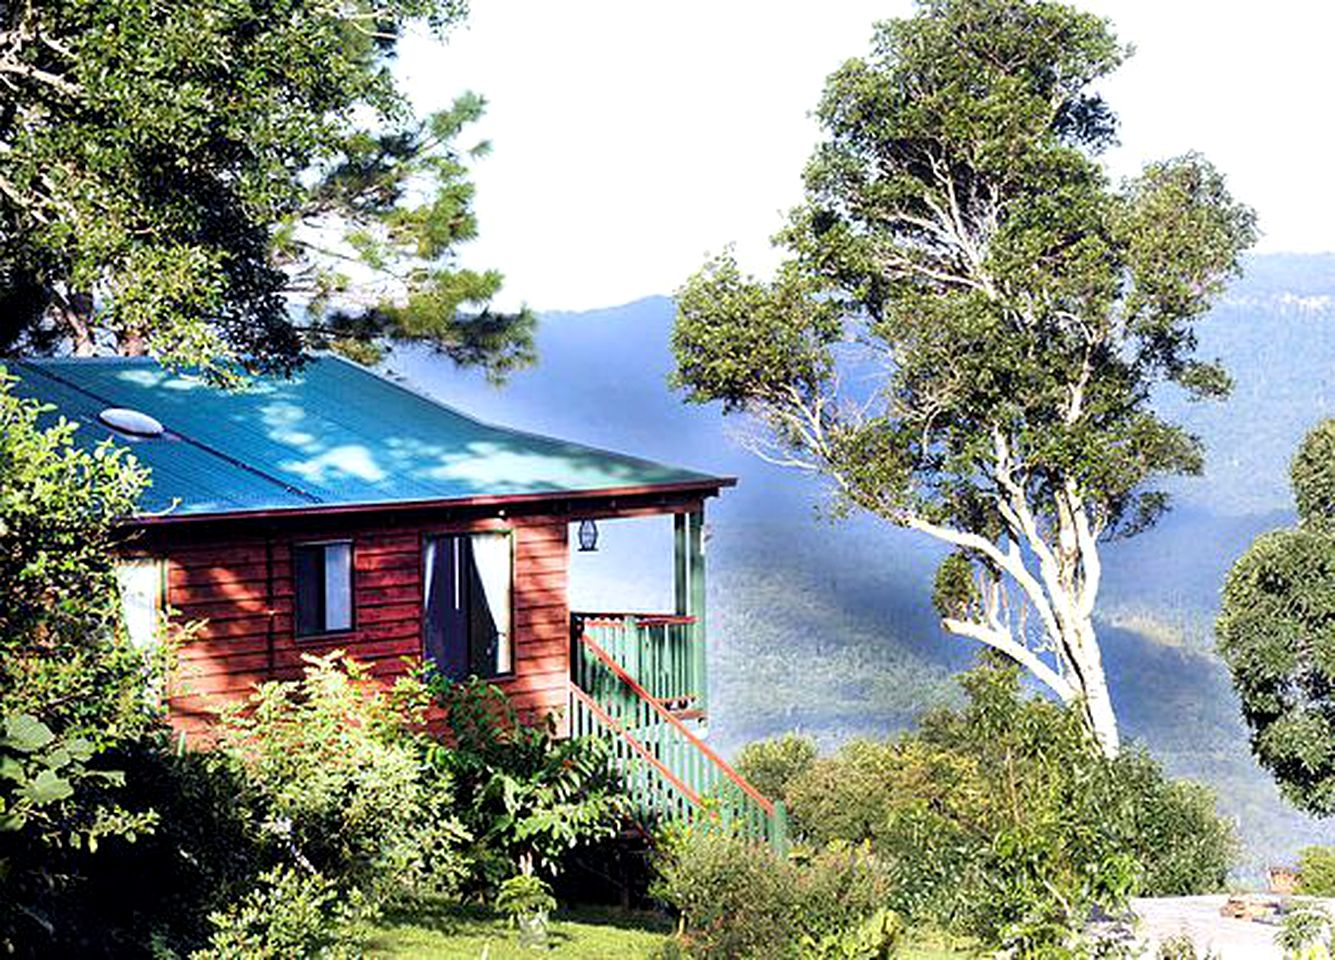 Cabins (Beechmont, Queensland, Australia)